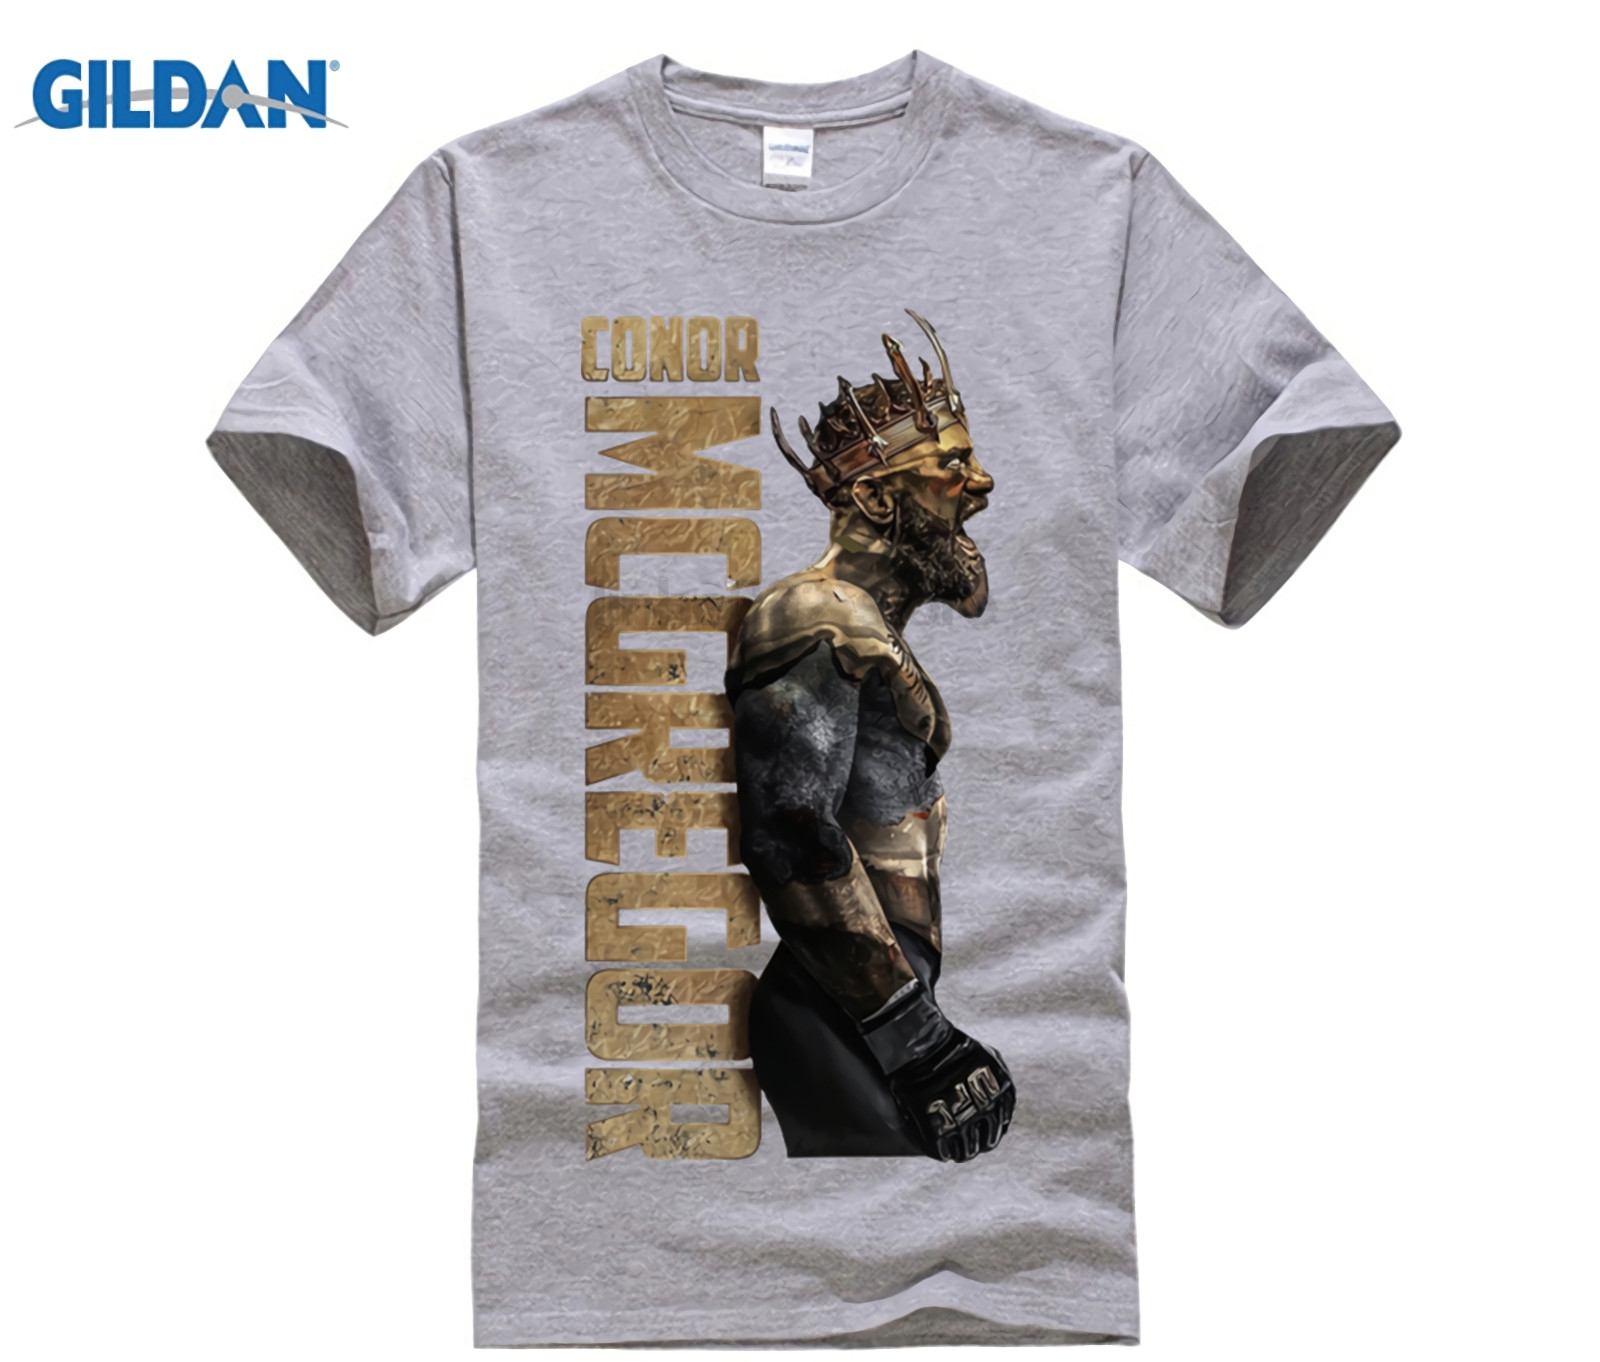 Brave Gildan Speg The King Of Conor Mcgregor Notorious T Shirt Men Short Sleeve Tops 100% Cortton Tee Clothes Male T-shirt